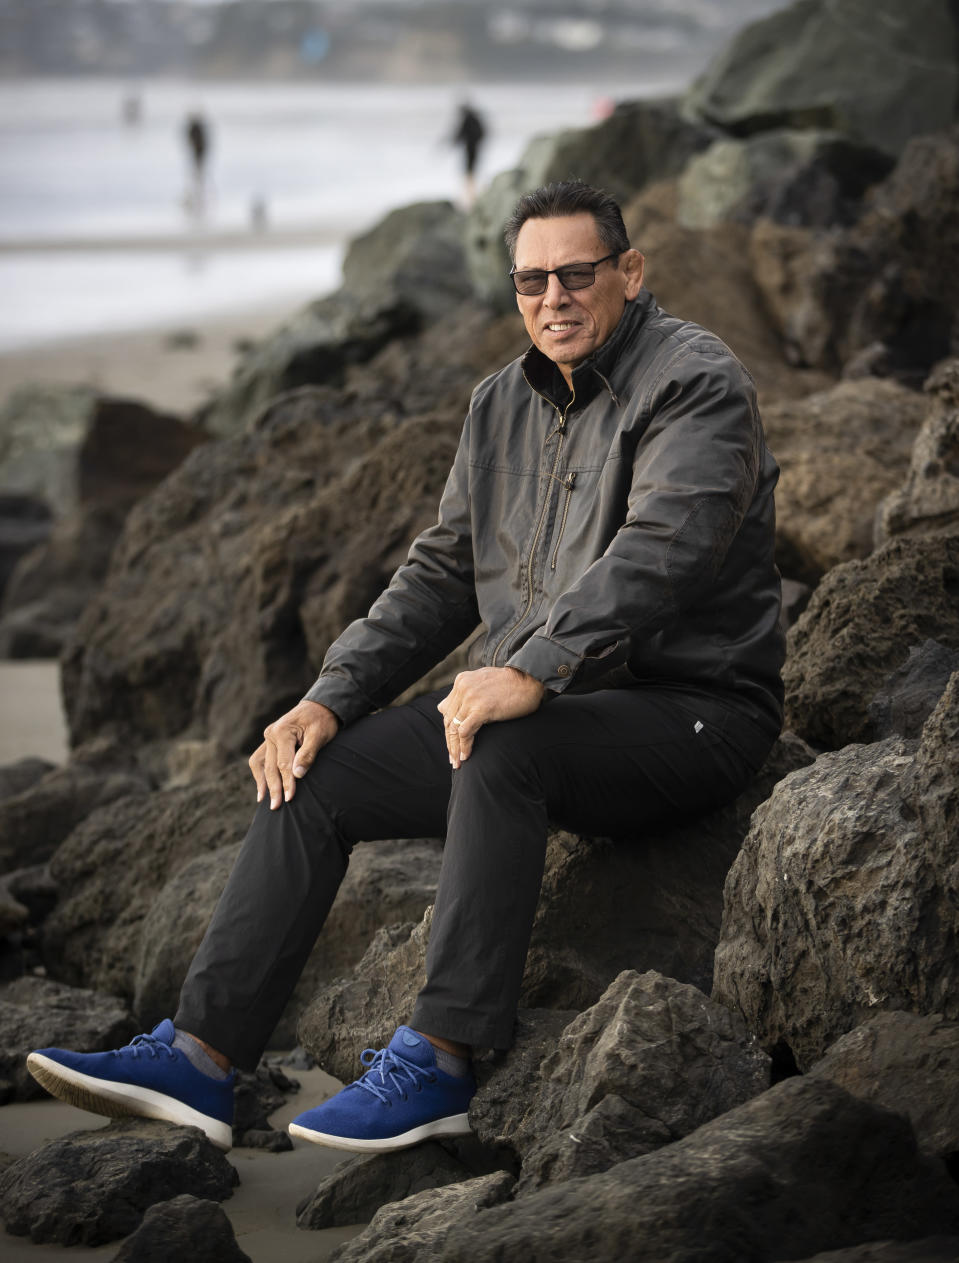 """Retired All Blacks captain Wayne Shelford poses for a photo in Orewa north of Auckland, New Zealand, Saturday, June 5, 2021. The former All Blacks captain Wayne """"Buck"""" Shelford has been knighted in the New Zealand civil honors list commemorating the Queen's Birthday public holiday. (Brett Phibbs/NZ Herald via AP)"""